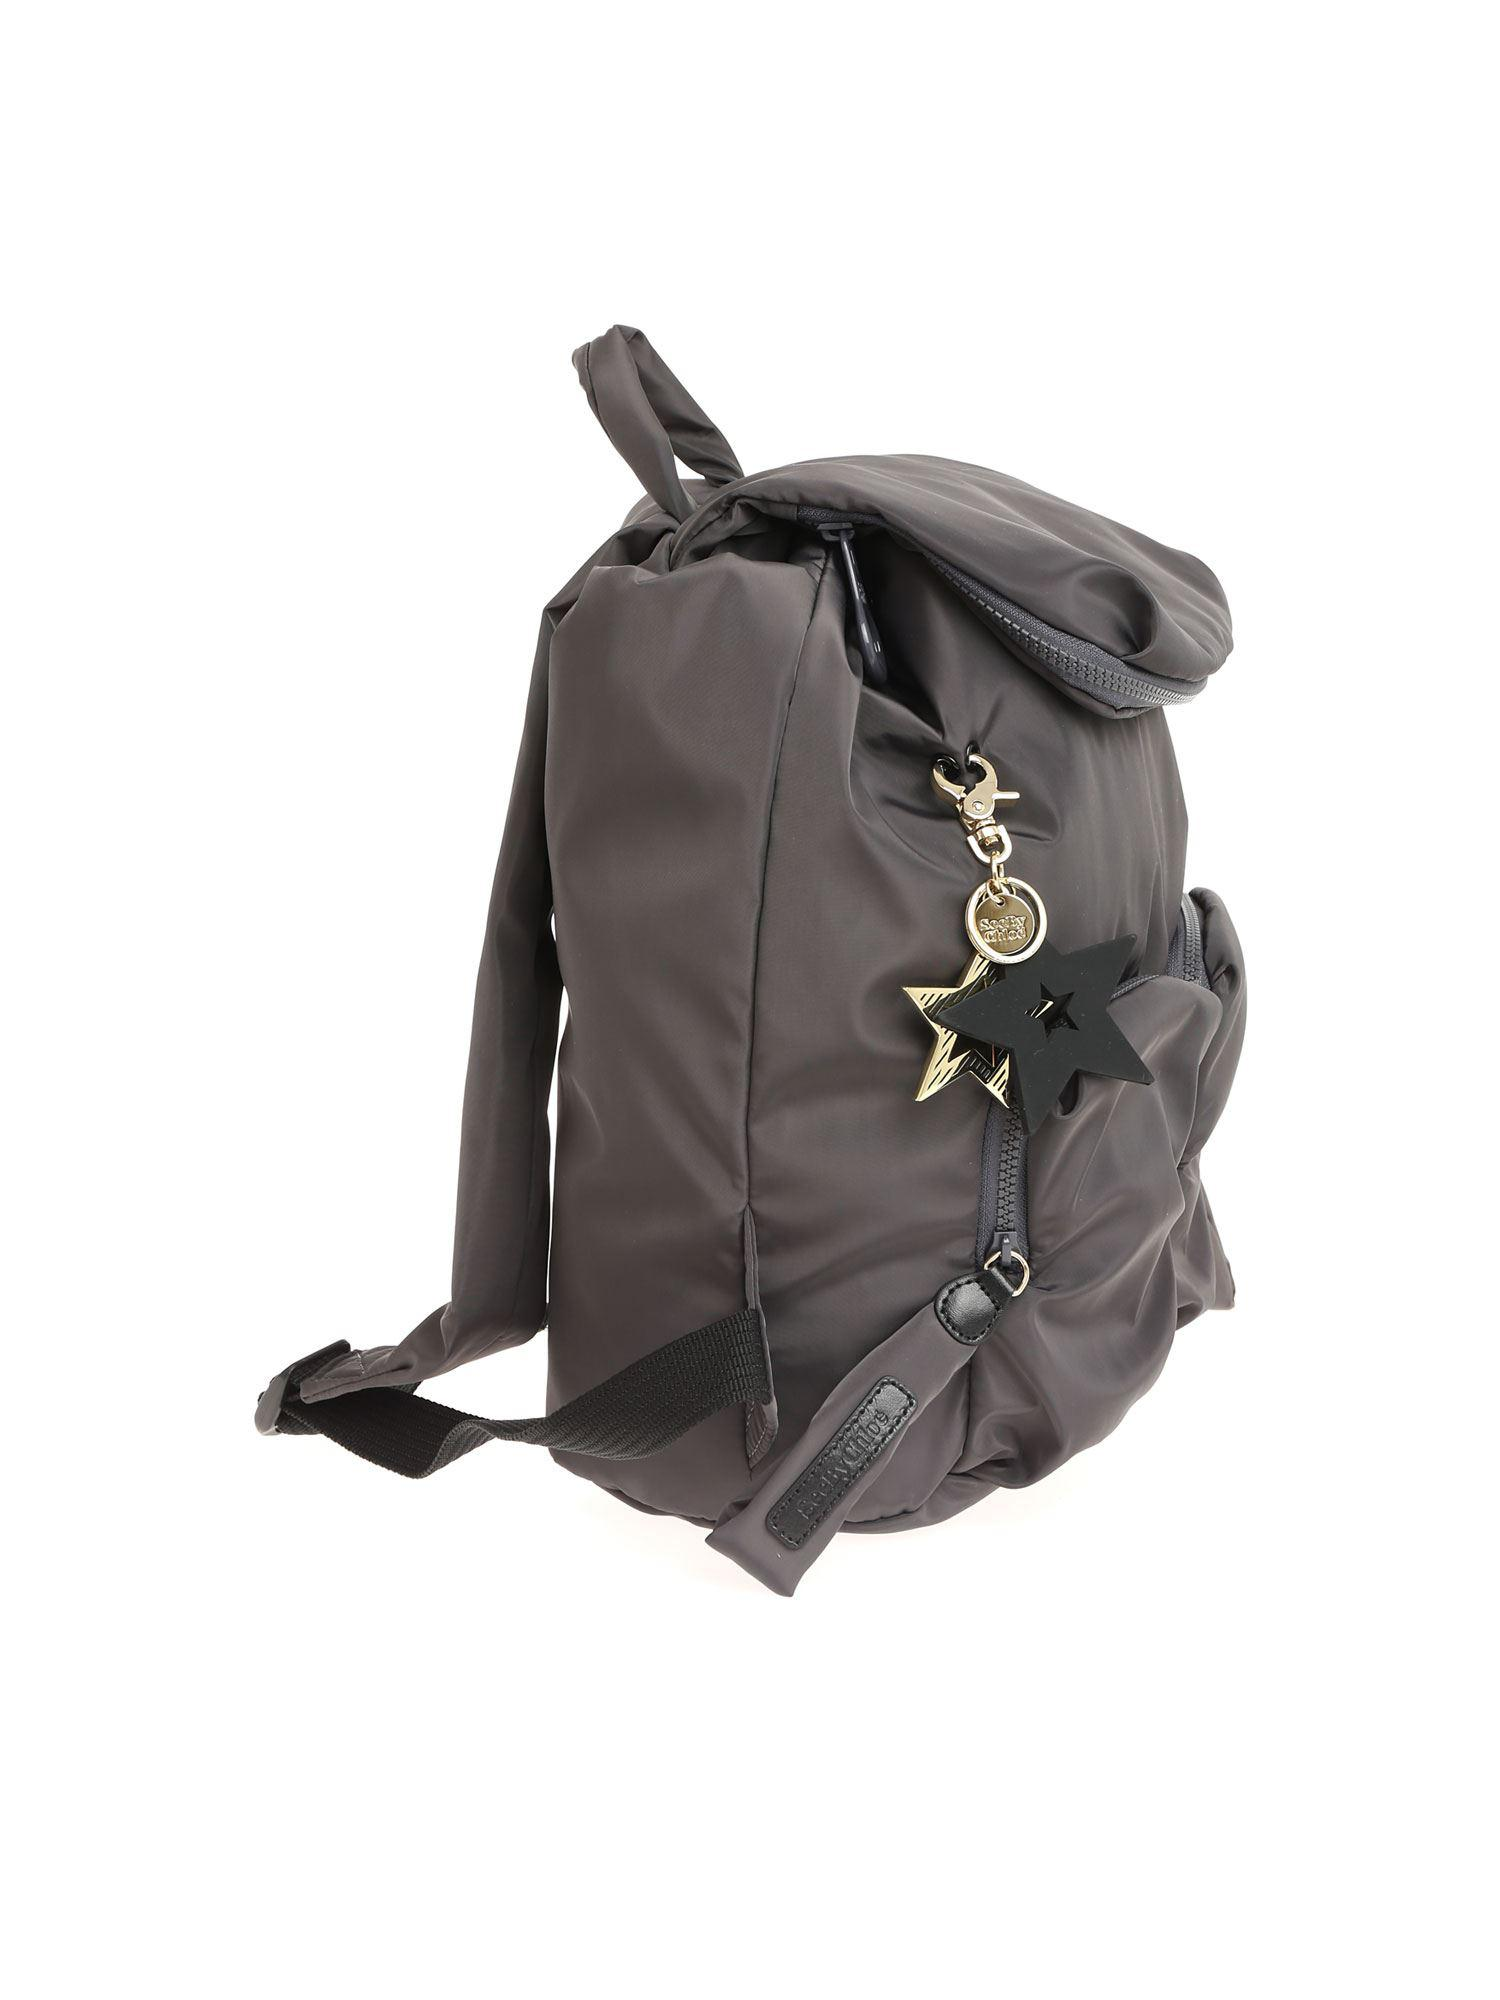 Lyst - See By Chloé Joy Rider Large Backpack 2ce22f3492b2a